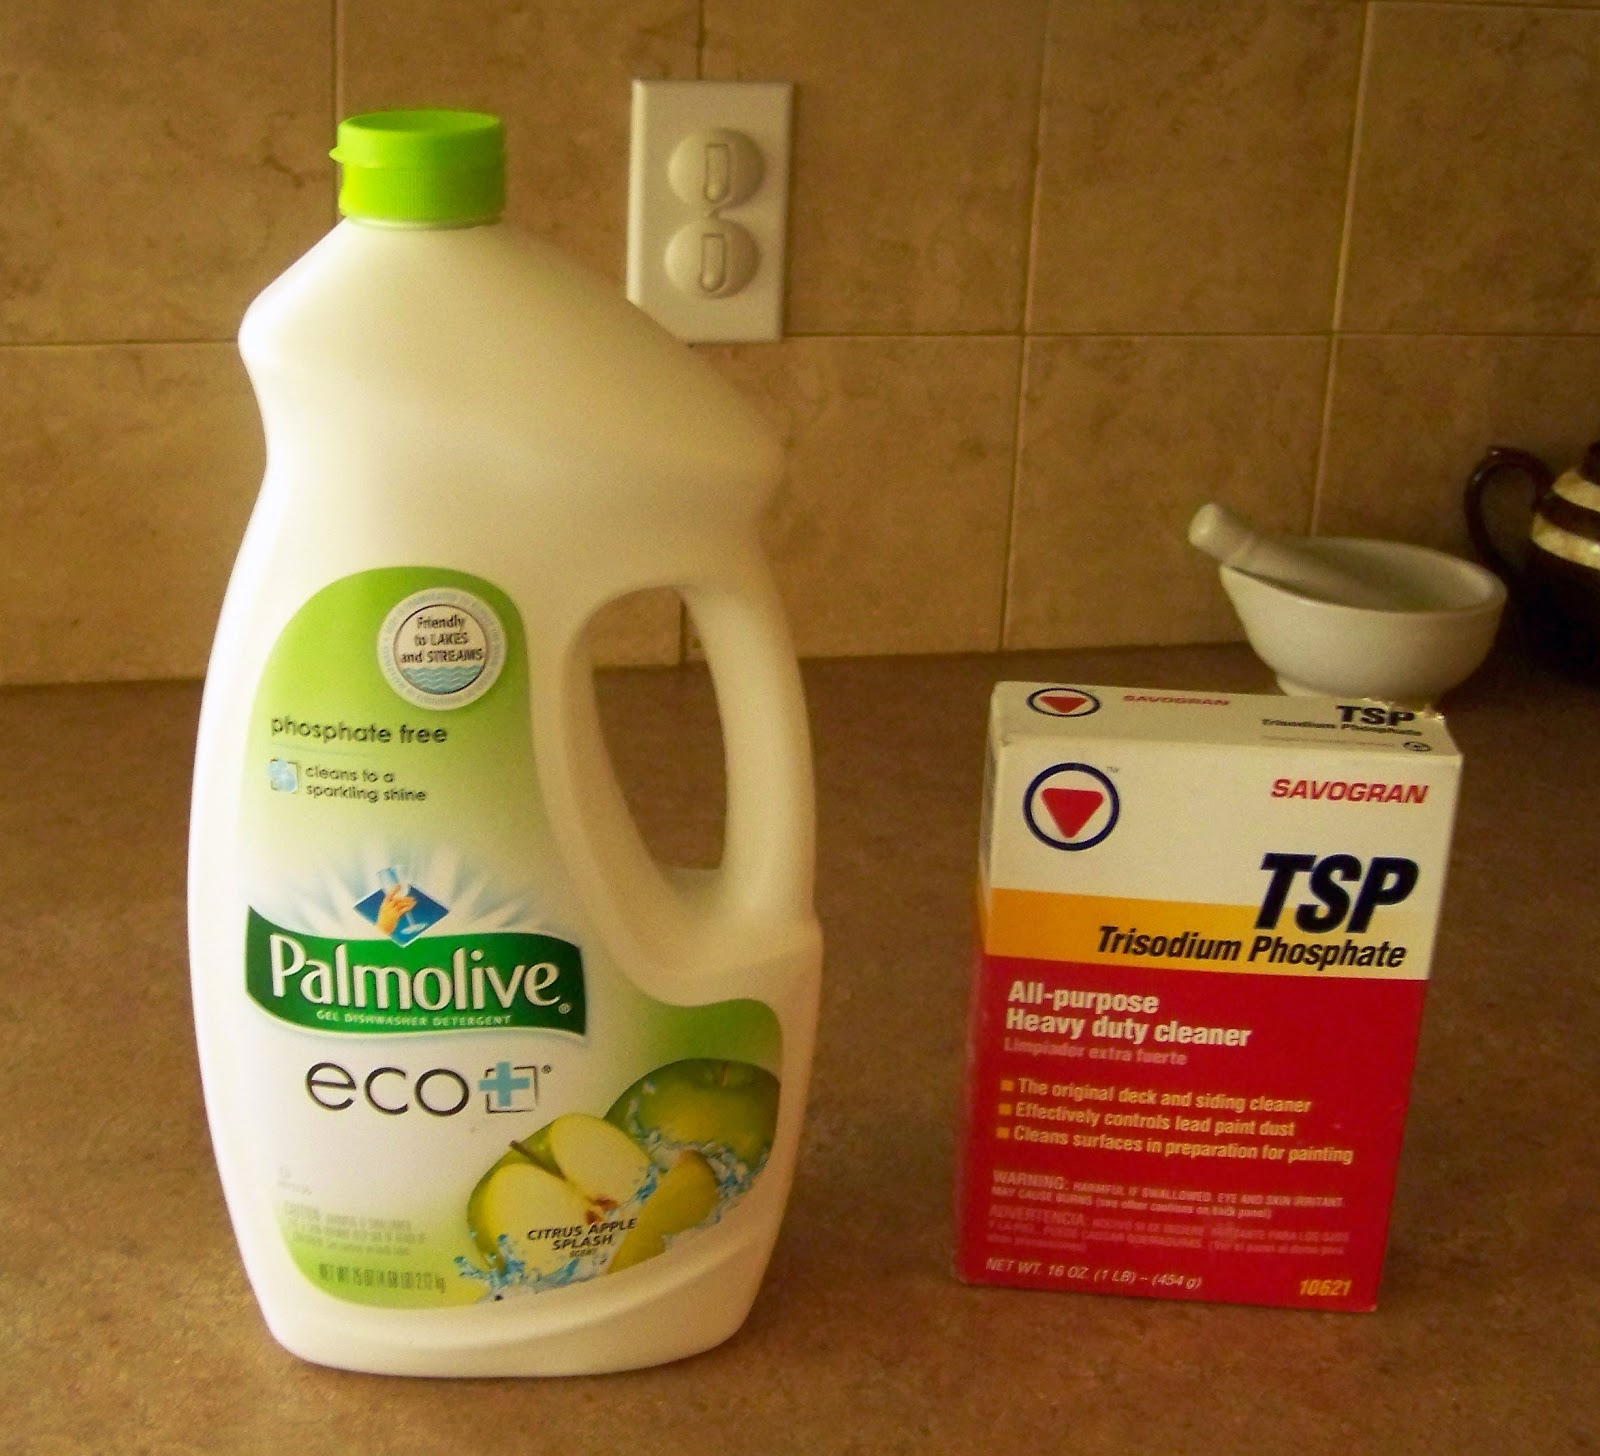 Poppy Juice Adding Trisodium Phospate to Your Dishwasher Detergent